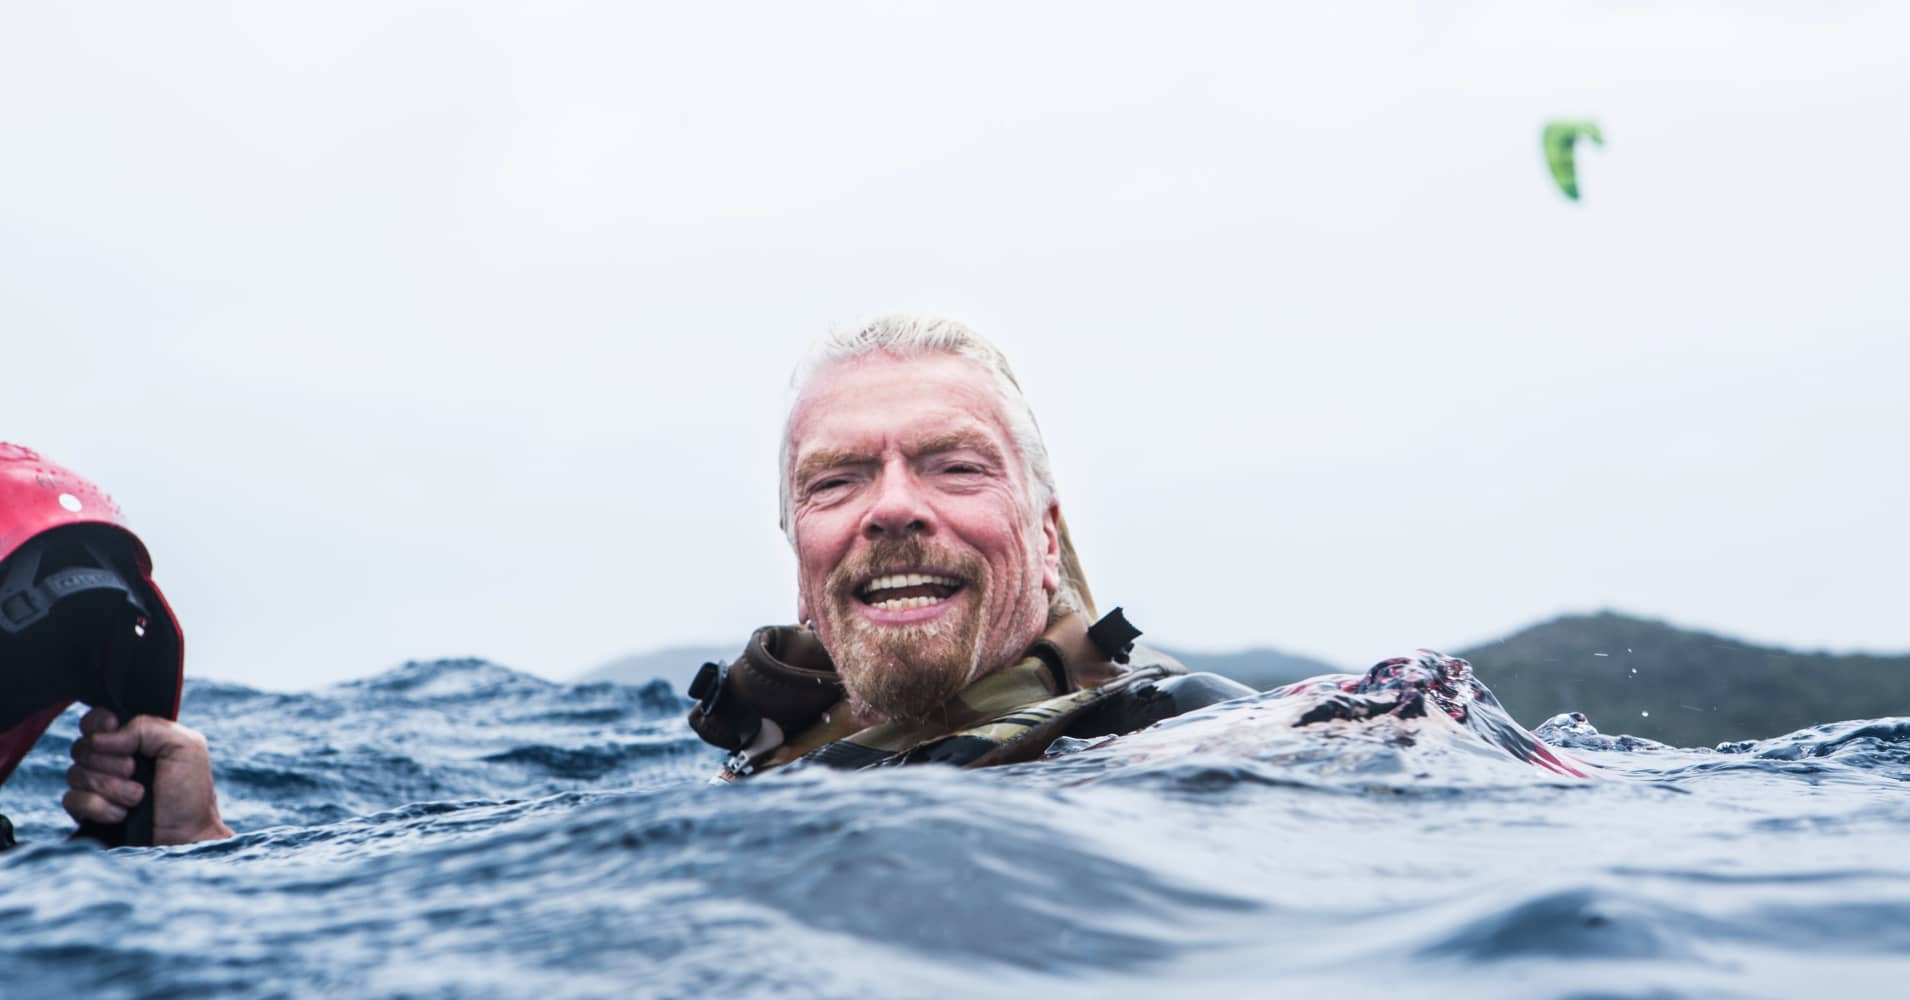 Richard Branson spends about six months out of the year on Necker Island